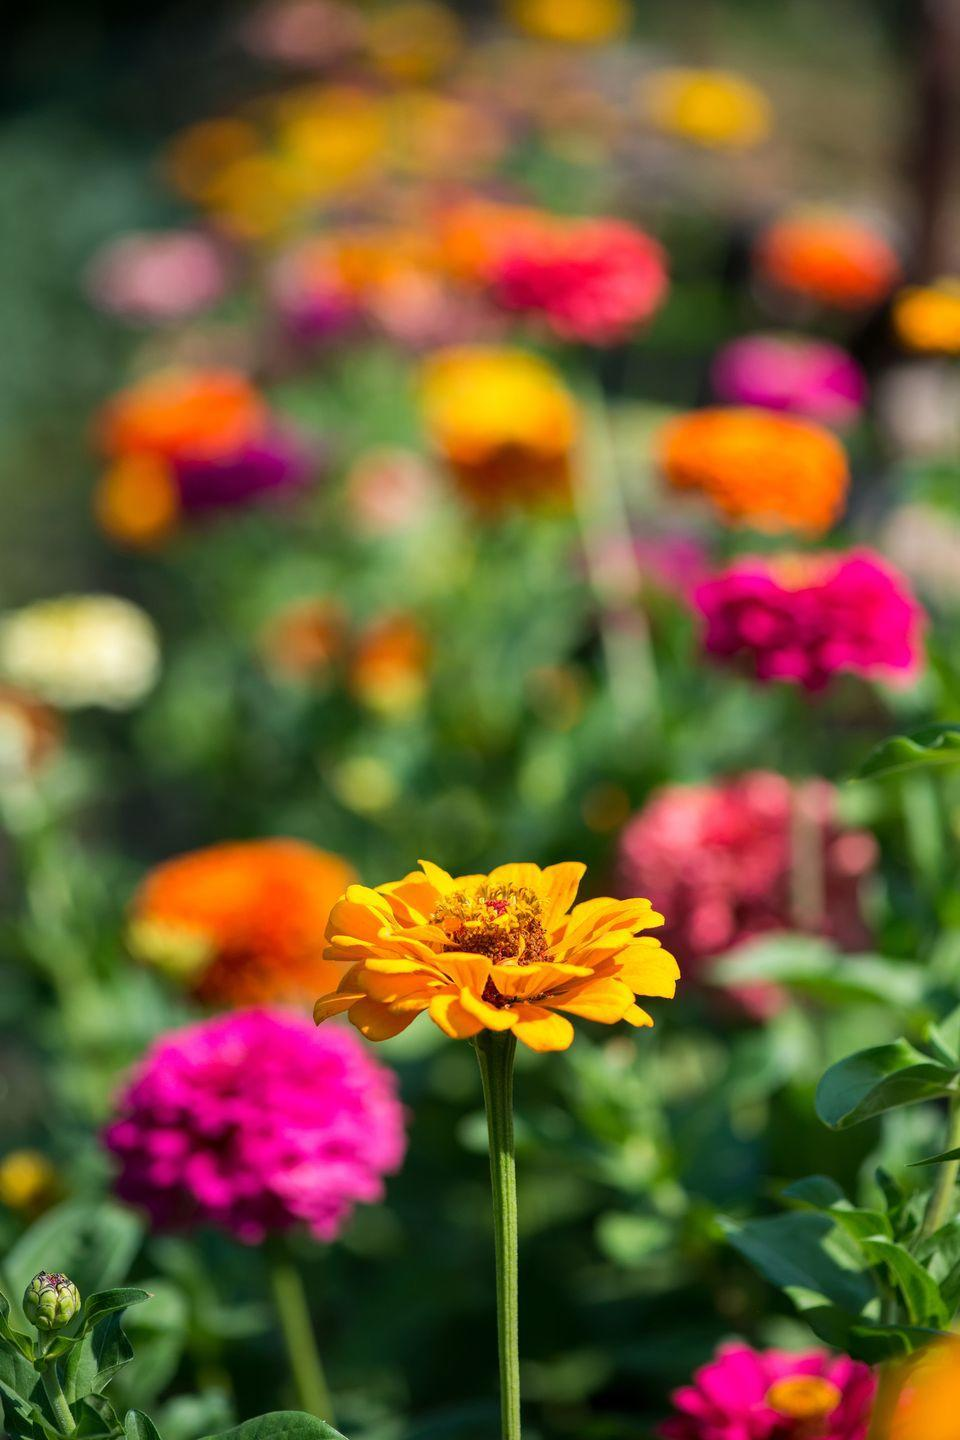 """<p>Extra-bright colors, sturdy stems, and huge blooms on some varieties make this annual a must-have for any garden border. Zinnias attract pollinators and bloom until frost, too. Needs full sun.<br></p><p>Varieties to try: White Wedding, Forecast Mix</p><p><a class=""""link rapid-noclick-resp"""" href=""""https://go.redirectingat.com?id=74968X1596630&url=https%3A%2F%2Fwww.burpee.com%2Fflowers%2Fzinnias%2Fzinnia-forecast-prod500078.html&sref=https%3A%2F%2Fwww.housebeautiful.com%2Fentertaining%2Fflower-arrangements%2Fg2411%2Fpopular-flowers-summer%2F"""" rel=""""nofollow noopener"""" target=""""_blank"""" data-ylk=""""slk:SHOP NOW"""">SHOP NOW</a></p>"""